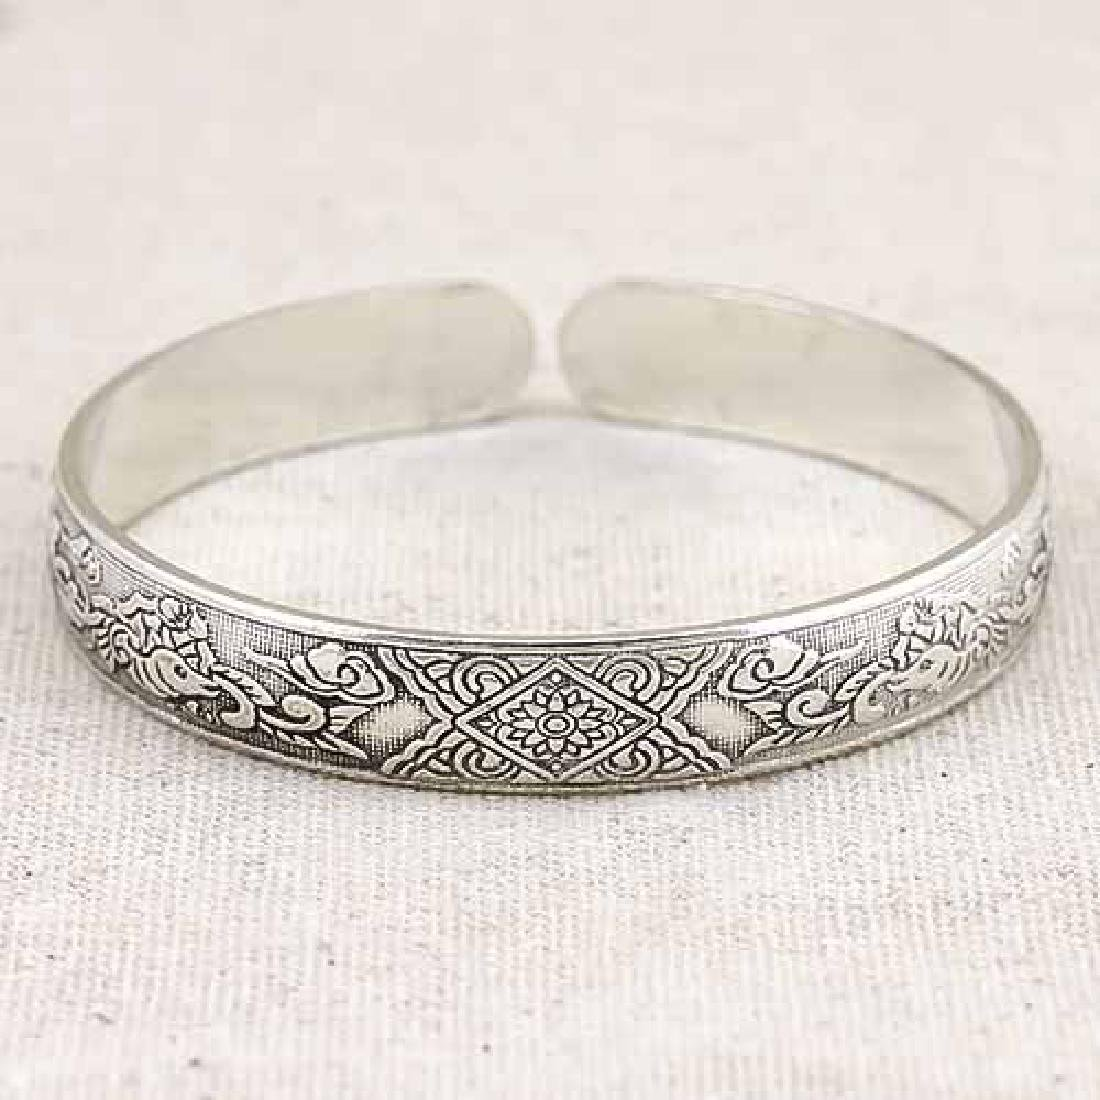 ANTIQUE SILVER ADJUSTABLE LUCKY BANGLE